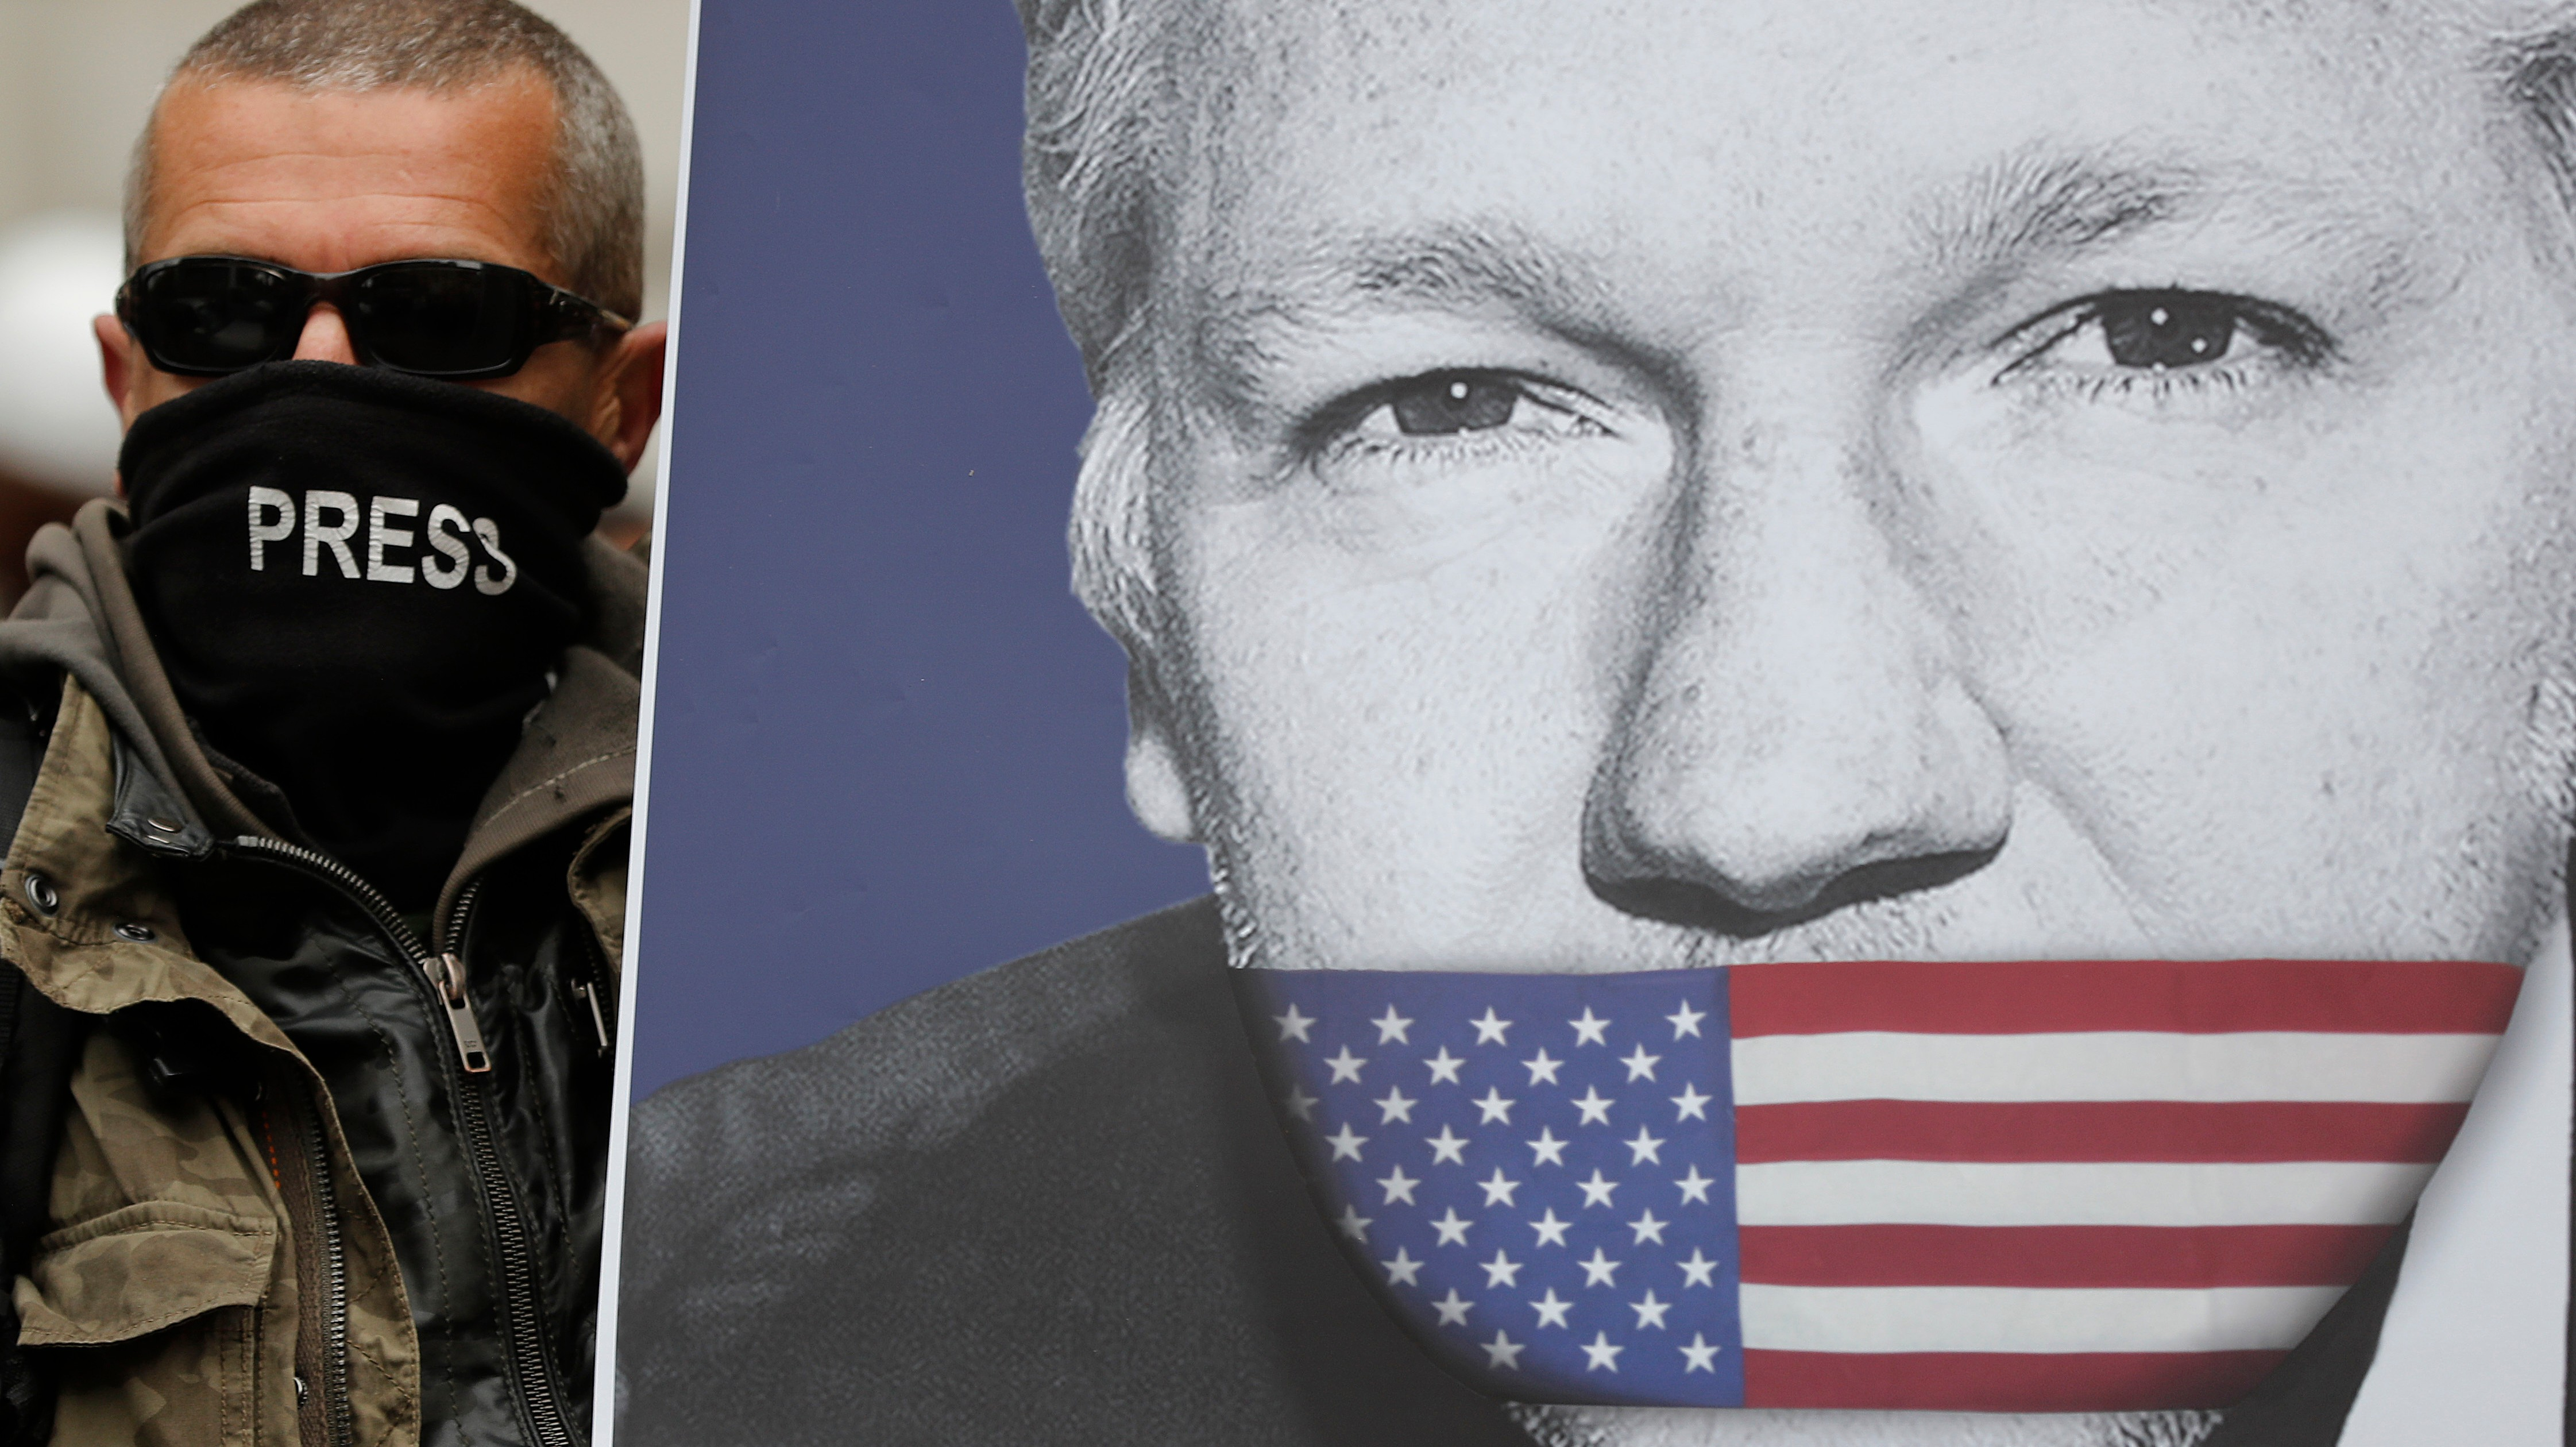 The DOJ Just Charged Julian Assange Under the Espionage Act